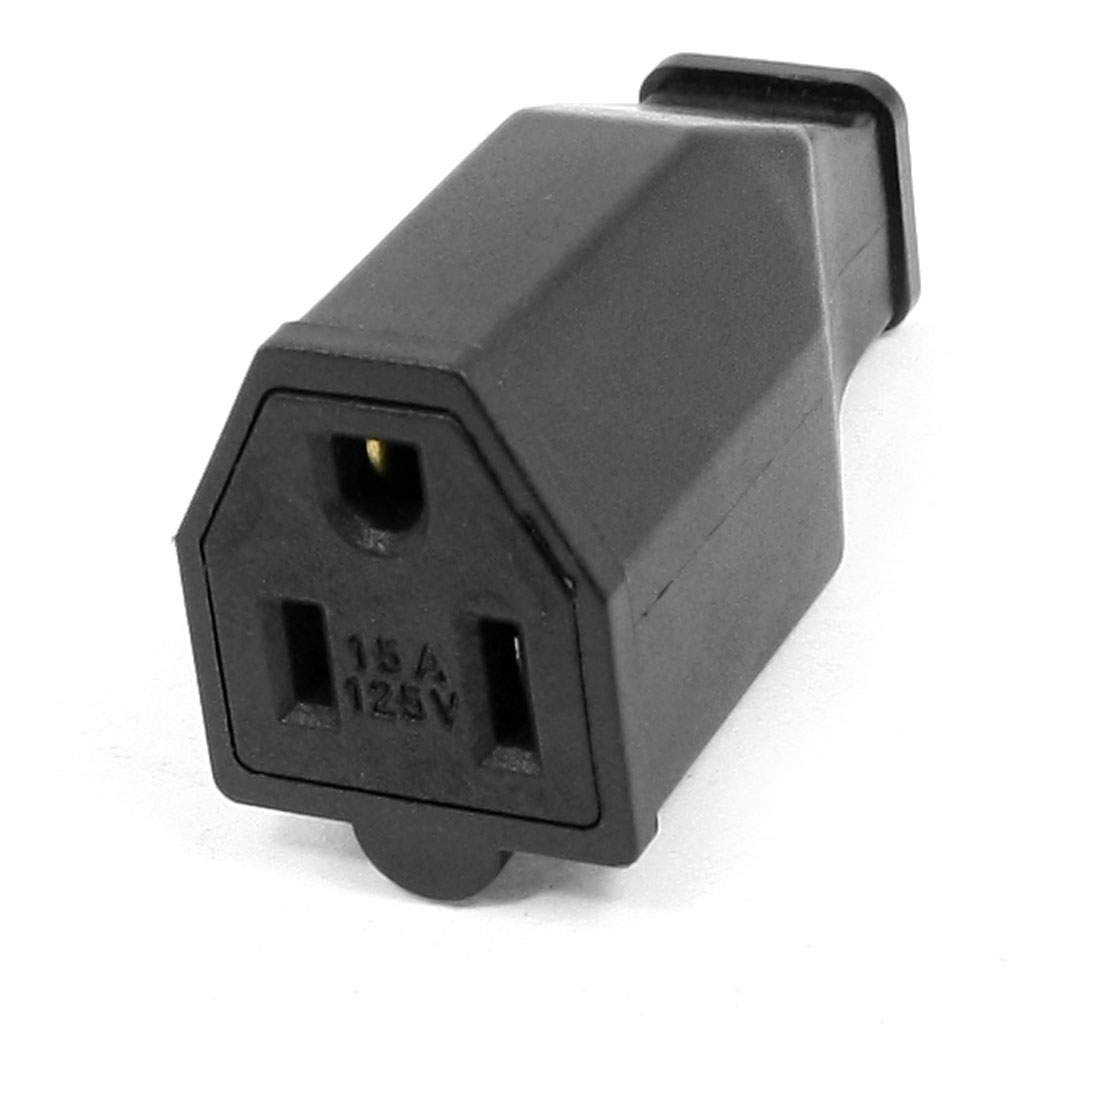 Japan US Grounding Socket Power Cord Connector Black AC 125V 15A